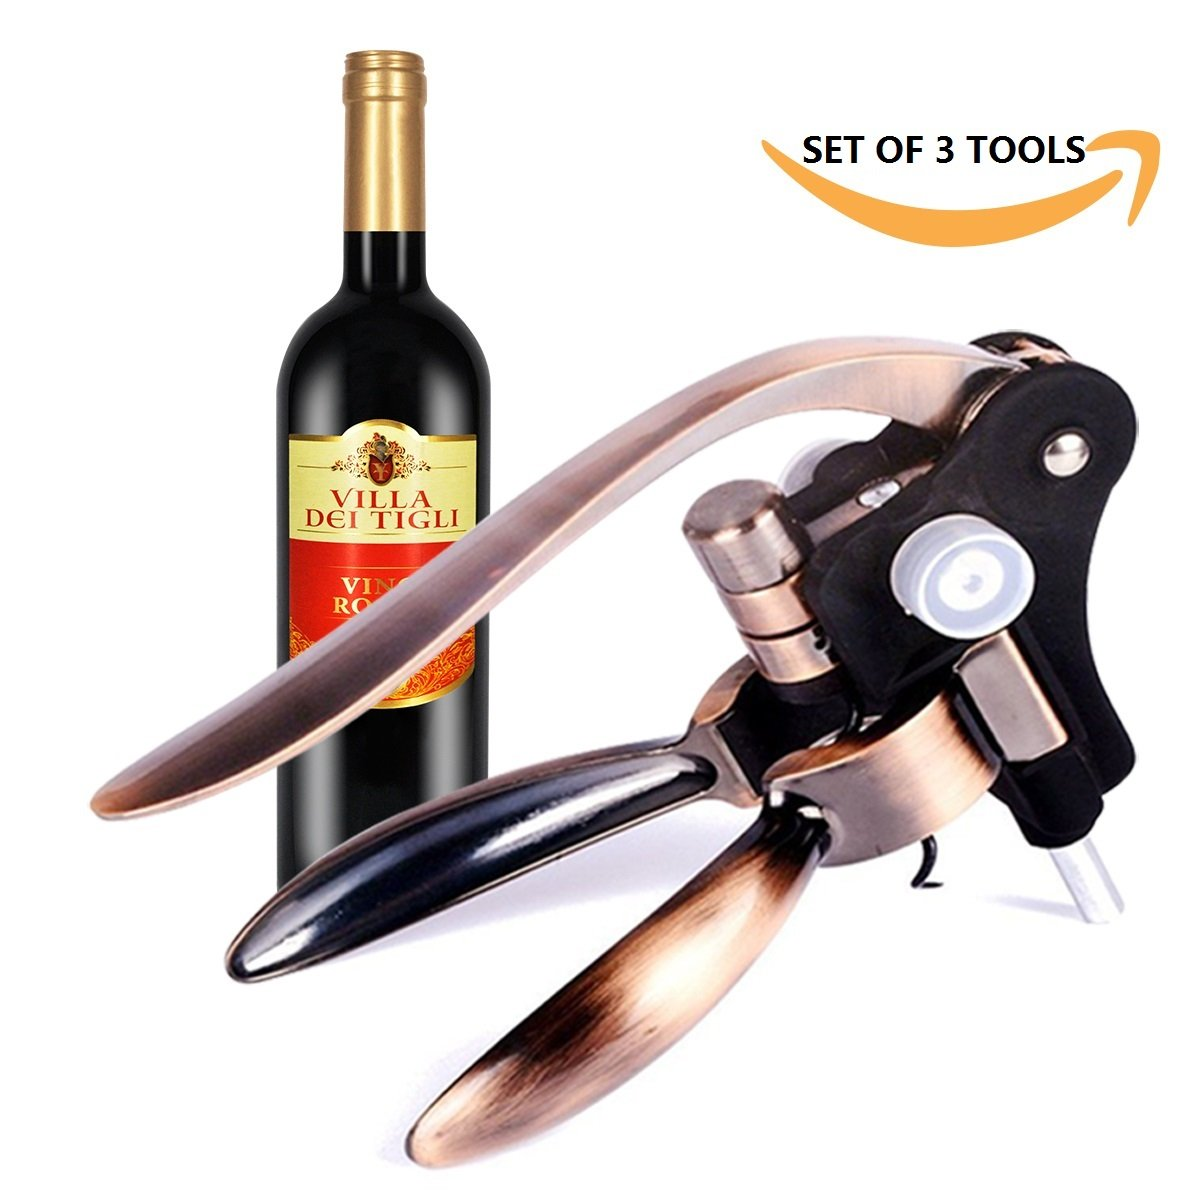 Home Servz Rabbit Wine Opener Corkscrew Durable Bottle Opener - Easy To Use Wine Accessory - Foil Cutter & Replaceable Drill (set of 3 Tools)